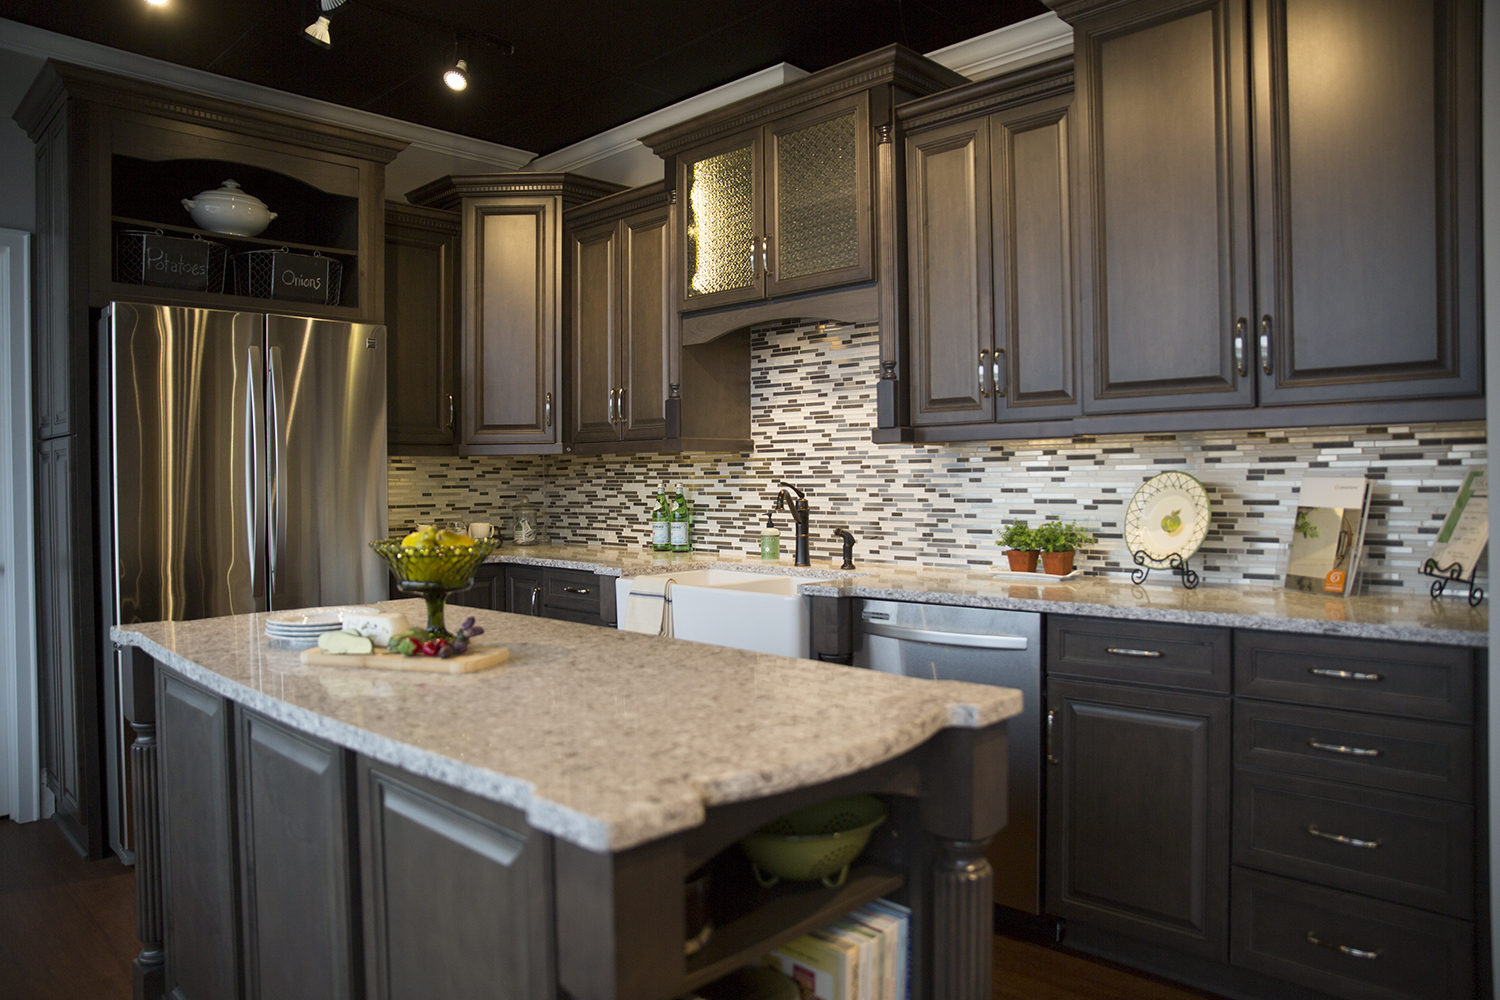 kitchen cabinets and countertops full marsh furniture gallery  bath remodel custom